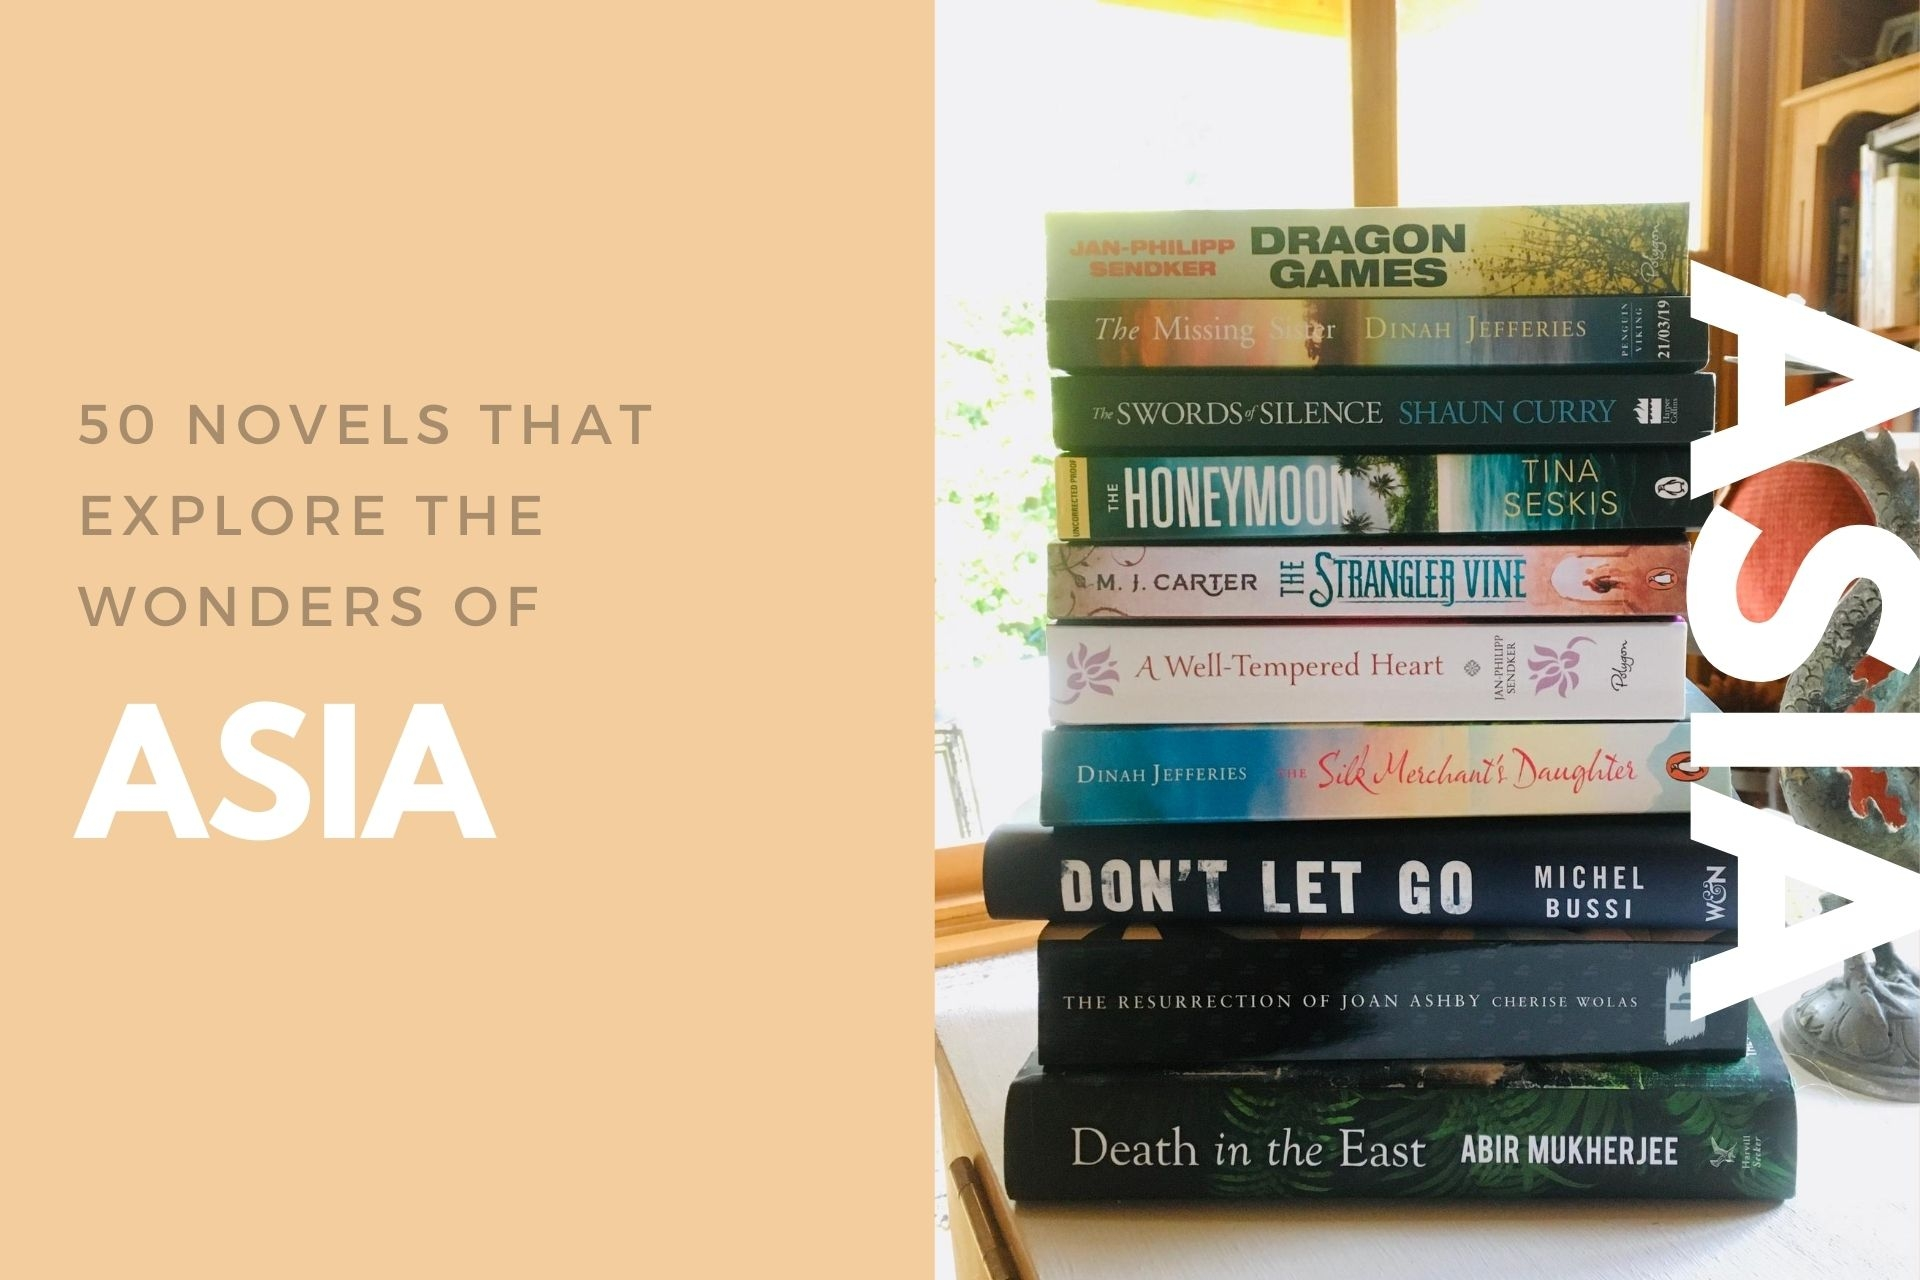 50+ Novels That Explore the Wonders of Asia